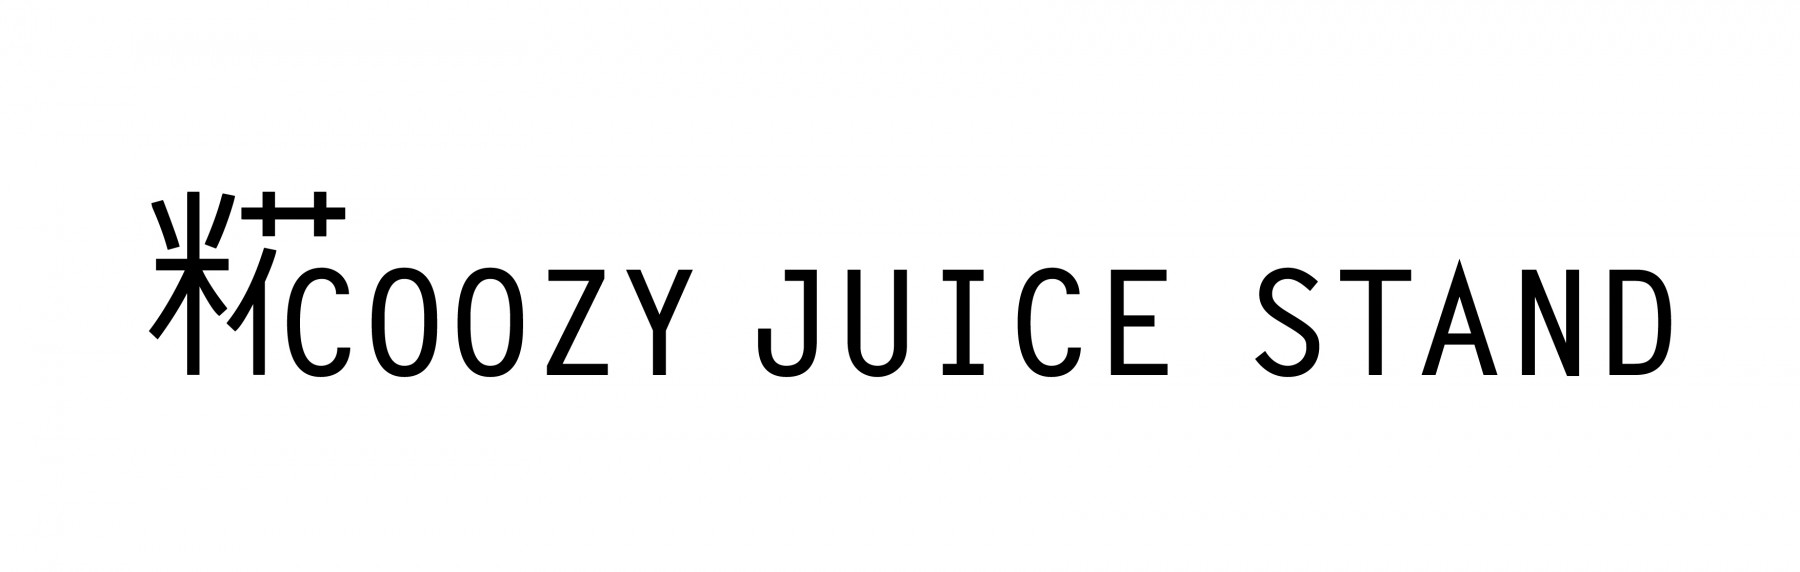 COOZY JUICE STAND